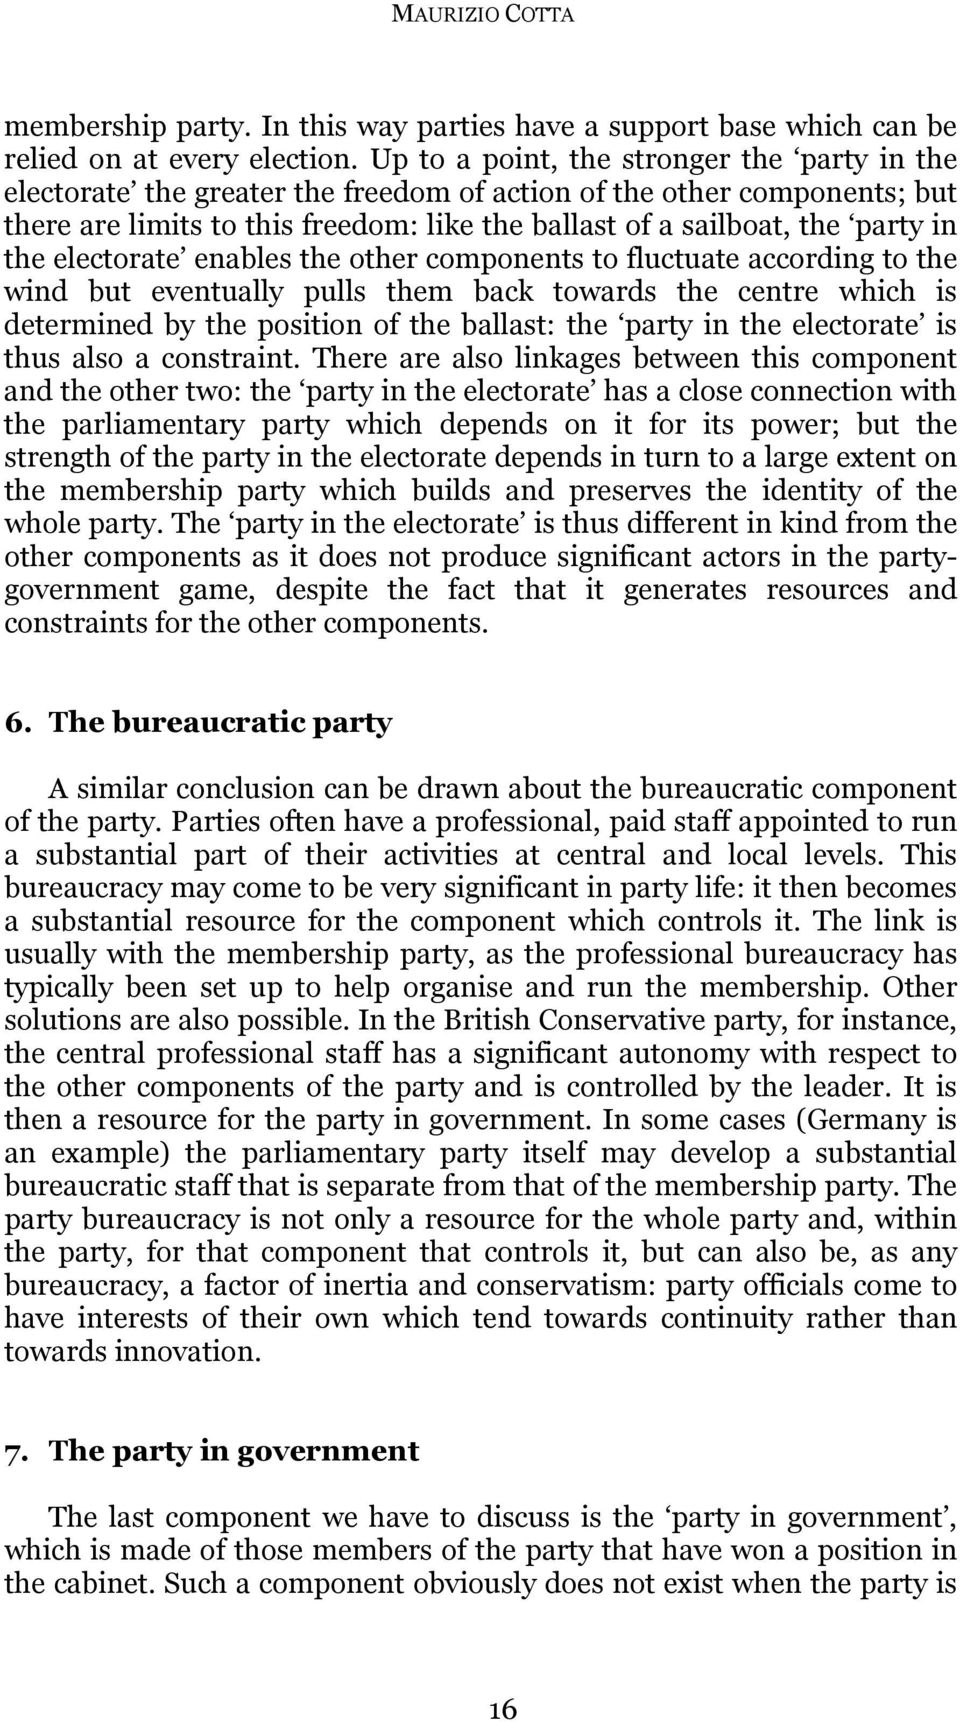 the electorate enables the other components to fluctuate according to the wind but eventually pulls them back towards the centre which is determined by the position of the ballast: the party in the